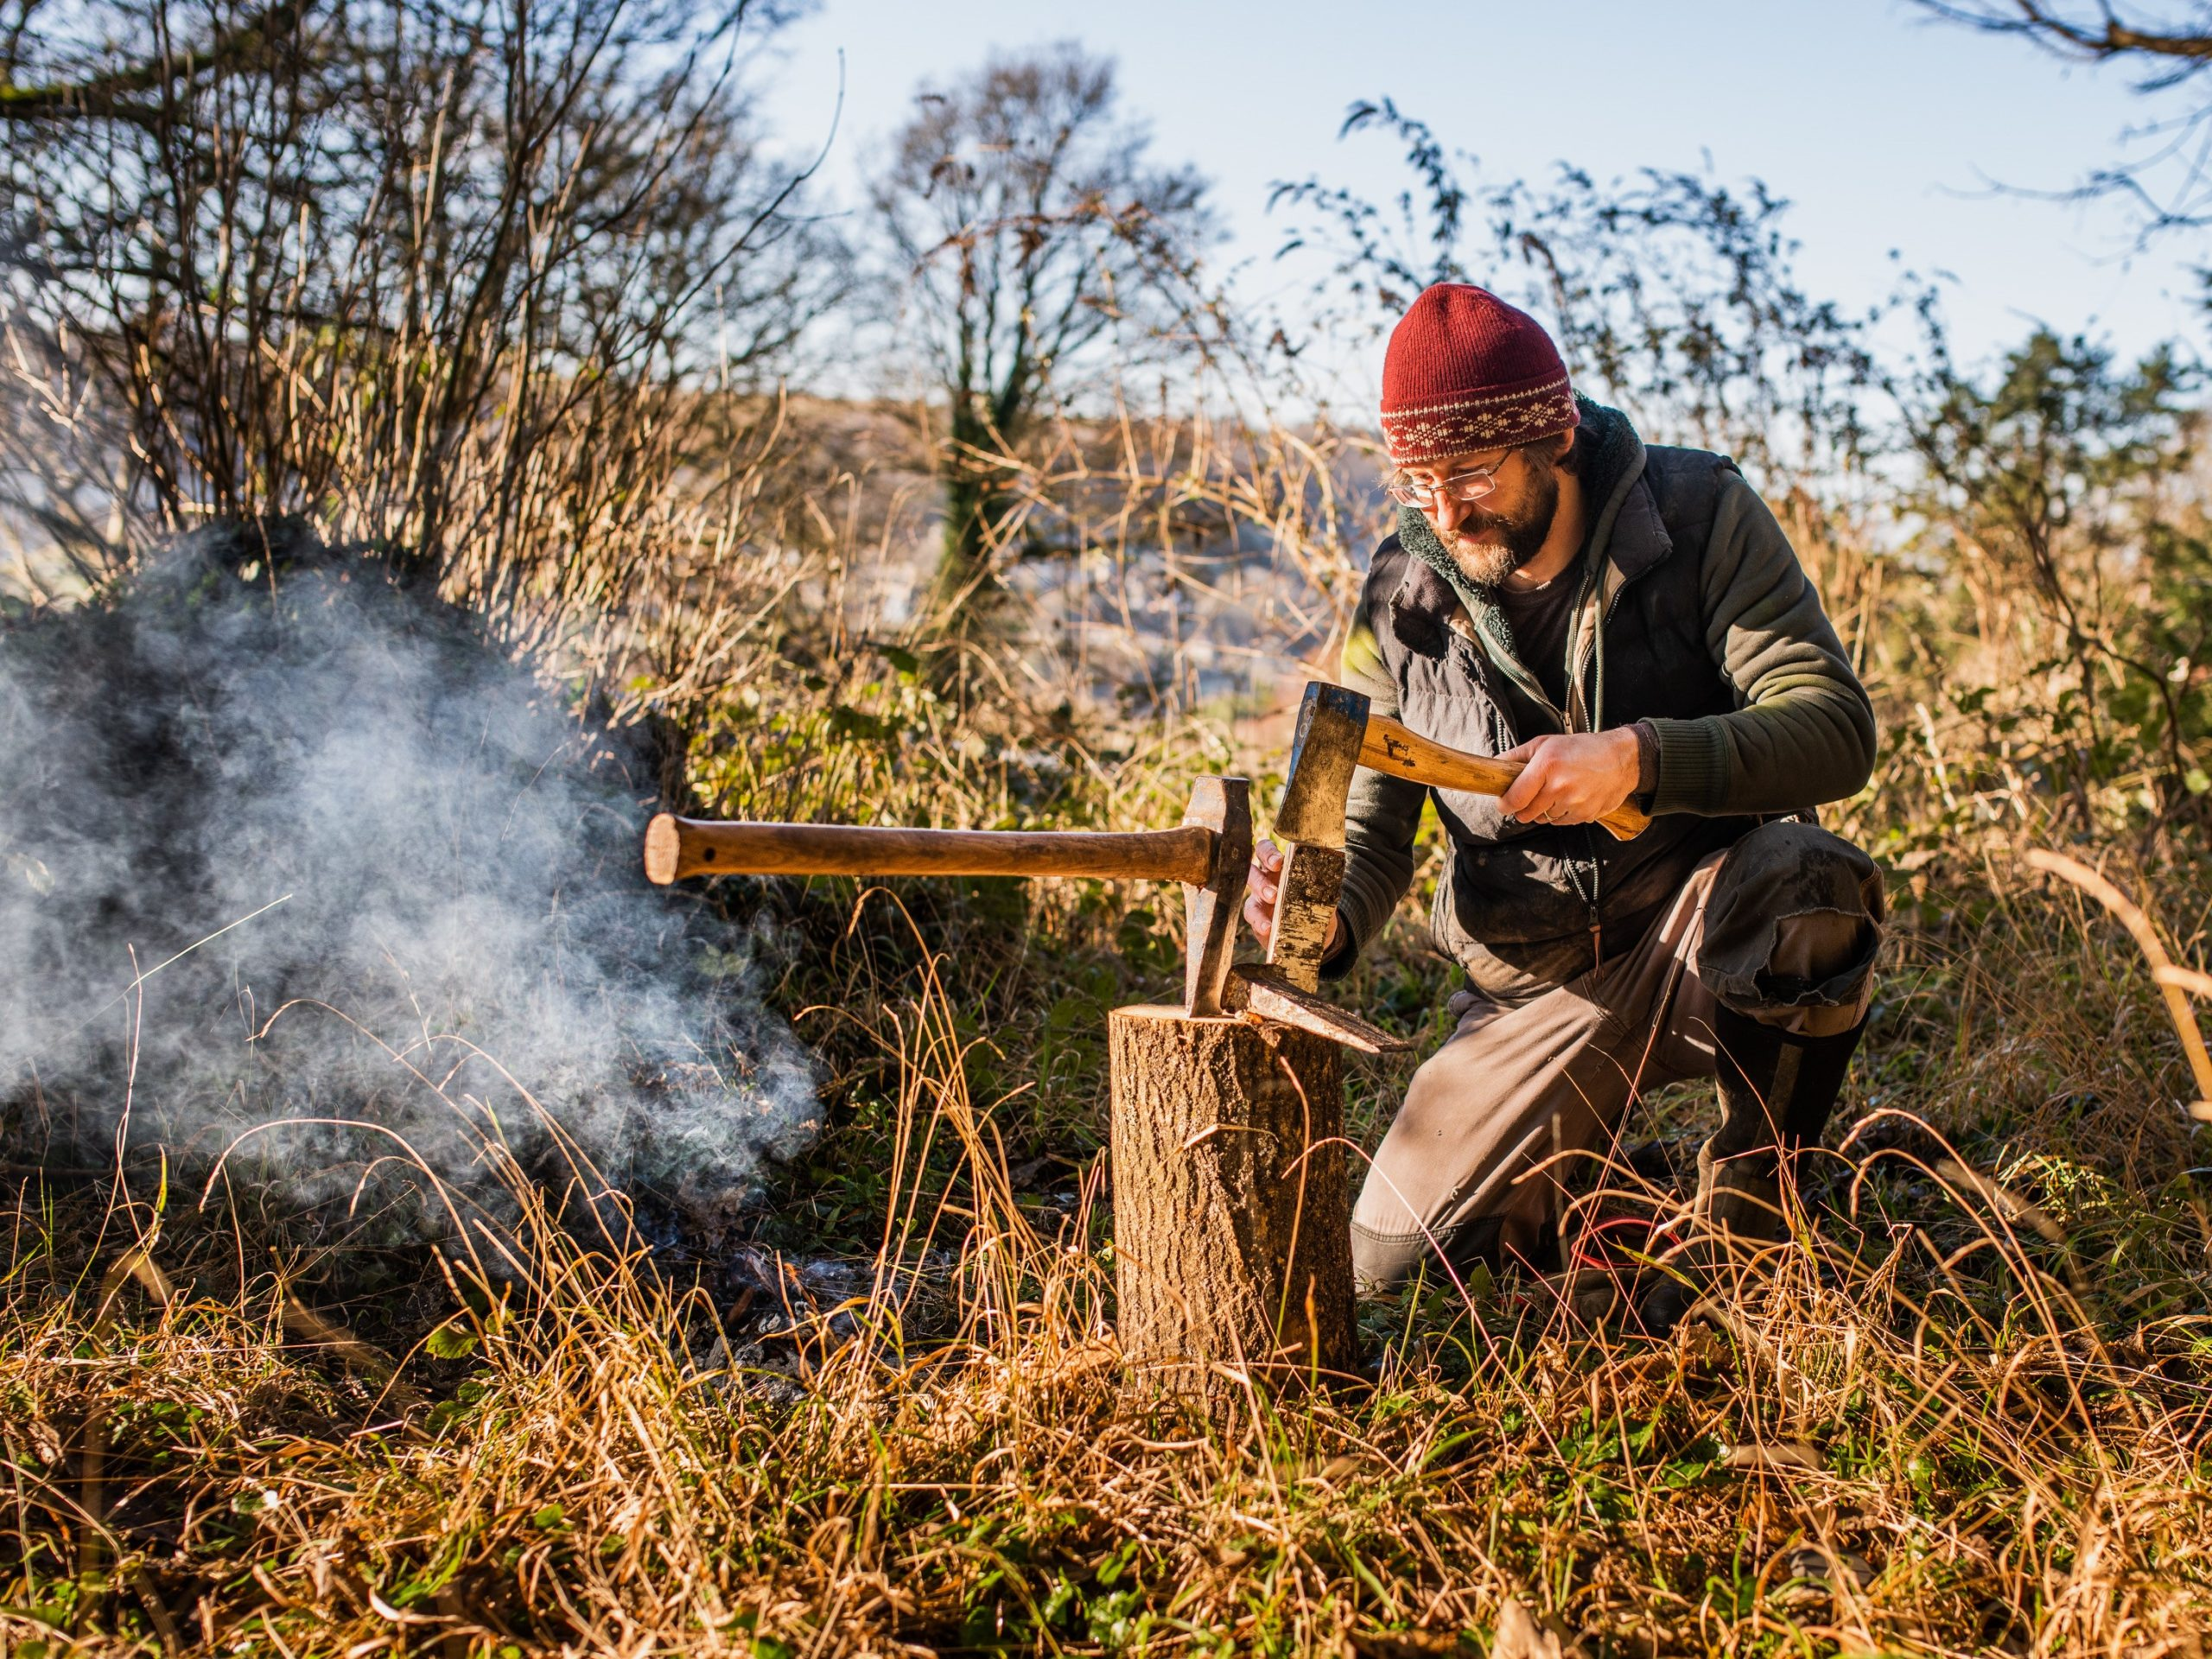 A man in a red woolly hat kneels near an outdoor campfire to chop firewood with a kindling splitter whilst a larger axe sits embedded in the upturned log in front of him.